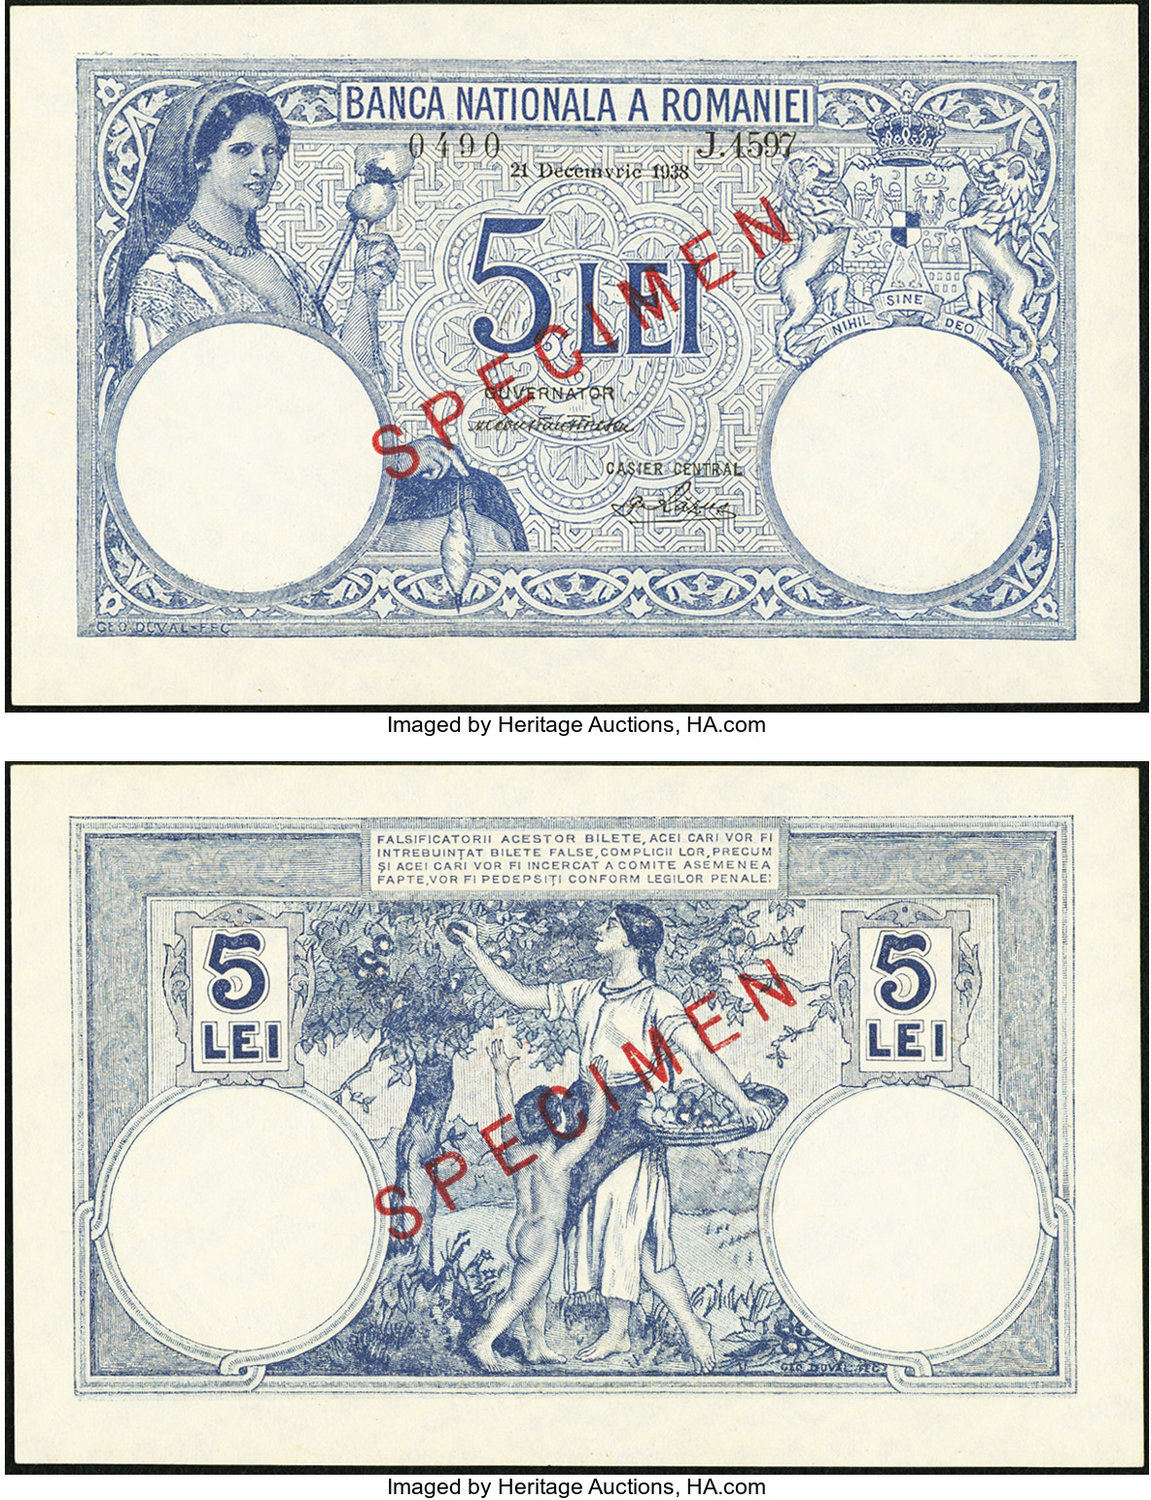 World Currency Romania Banca Nationala A Romaniei 5 Lei 21 12 1938 Pick 40s Specimen Issued Just Before War 2